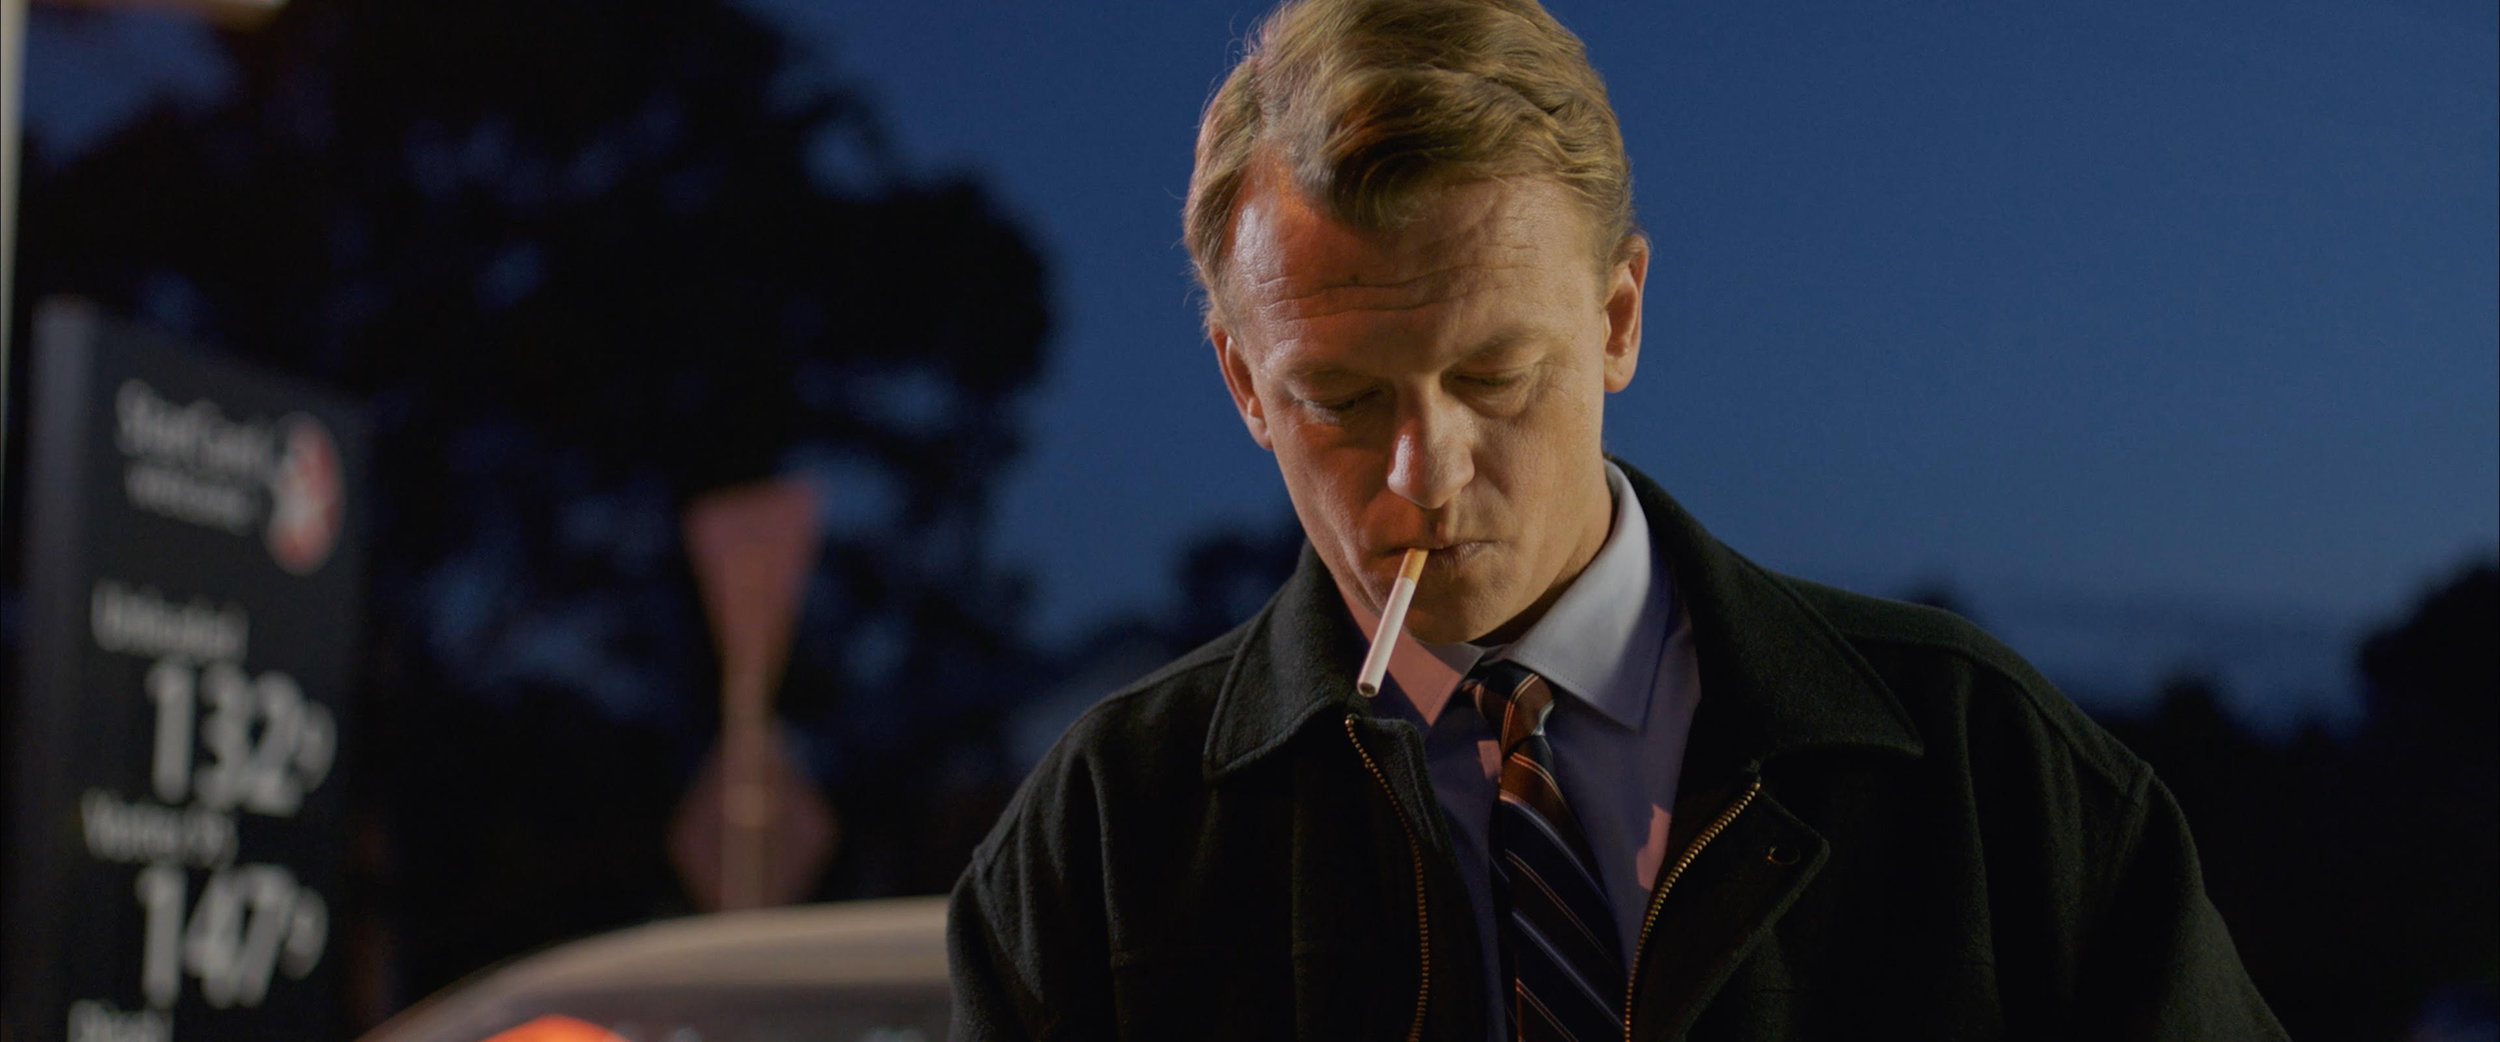 Sam O'Dell as Detective Jack Cahill